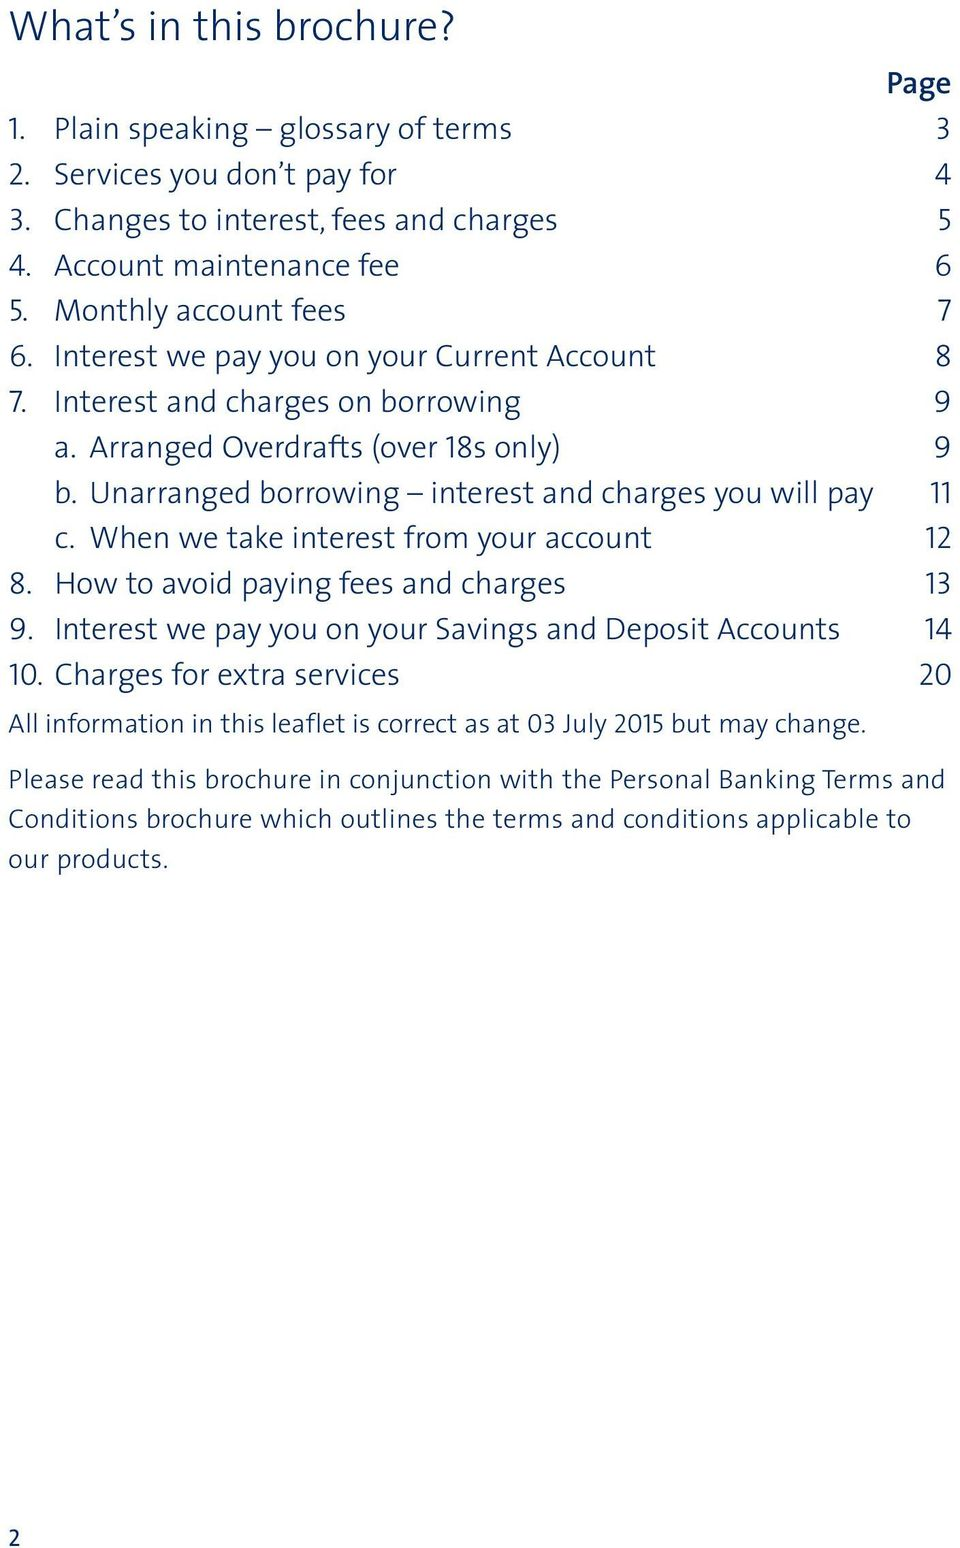 When we take interest from your account 12 8. How to avoid paying fees and charges 13 9. Interest we pay you on your Savings and Deposit Accounts 14 10.